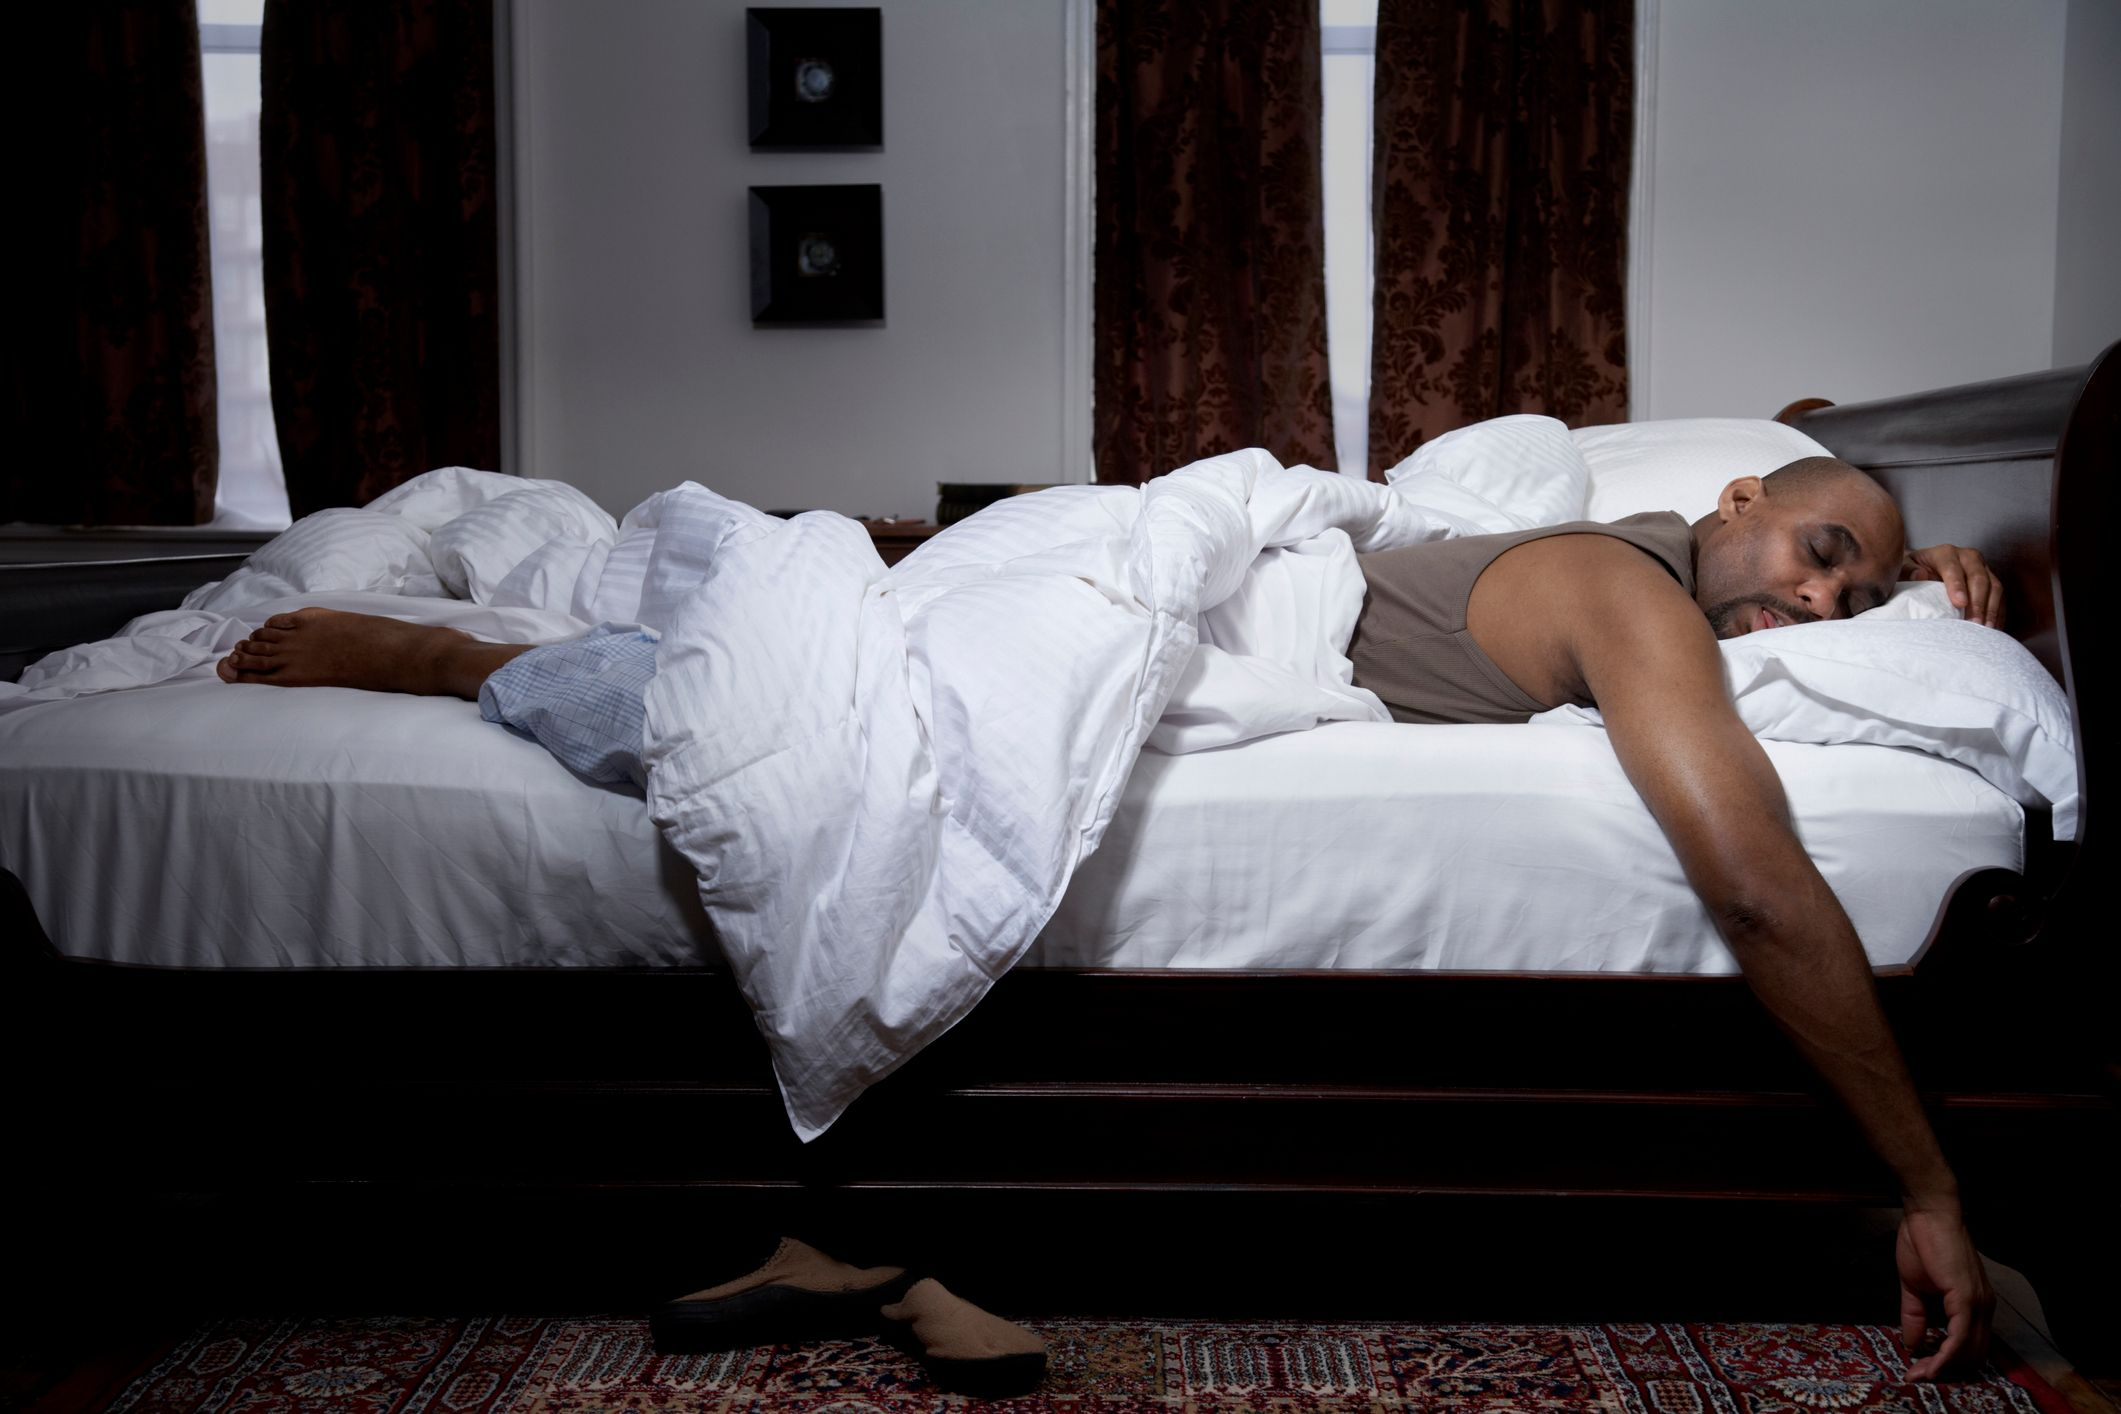 A man sleeping comfortably on a bed.   Photo: Shutterstock